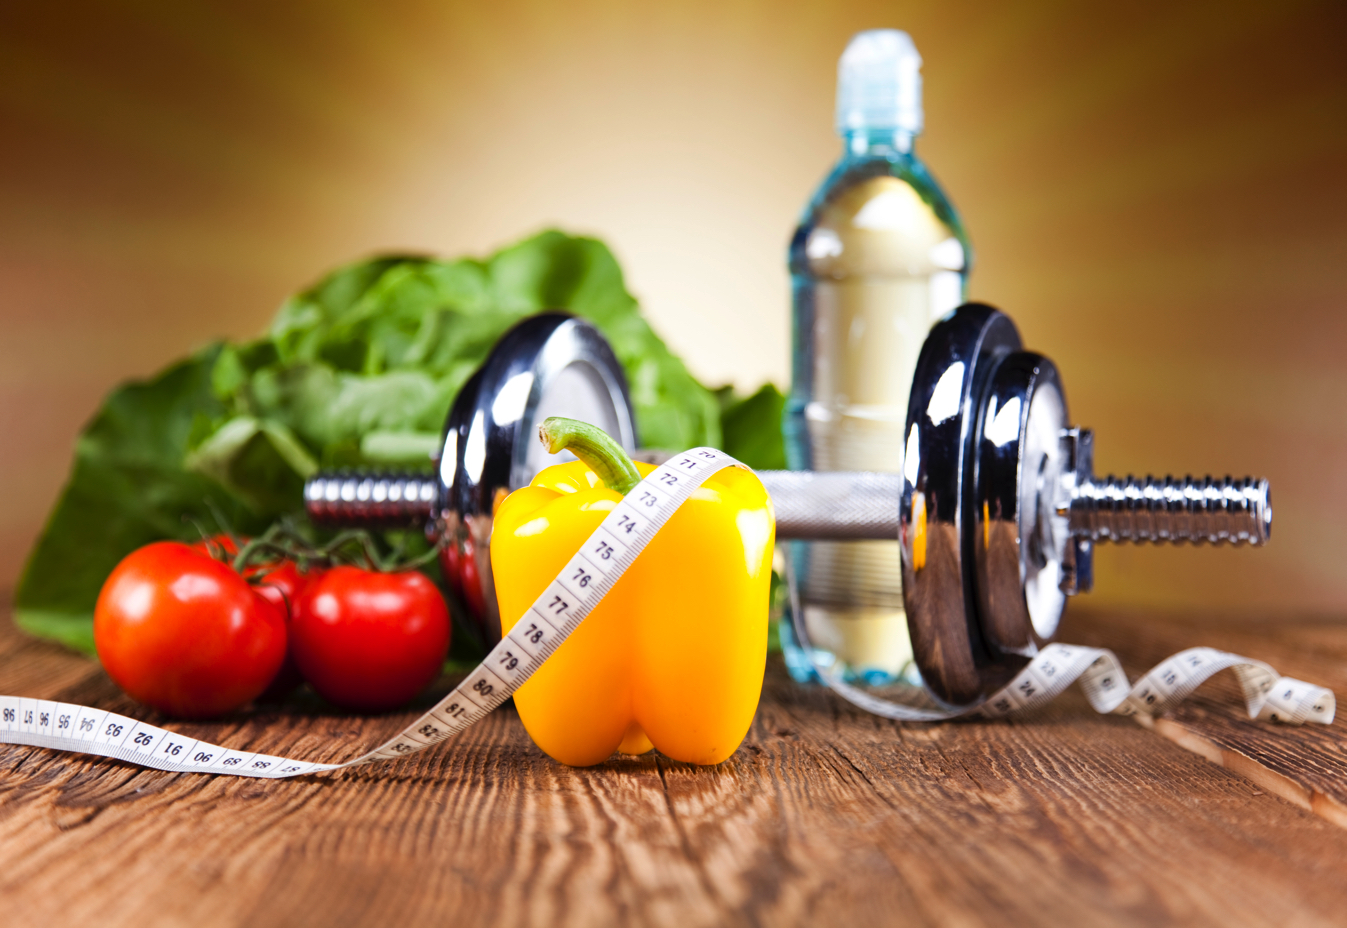 sports and healthy way of life A healthy way of life is very fashionable nowadays people, who lead a healthy way of life, follow some rules: go in for sports, temper, eat healthy food, keep to a day regimen and walk frequently in the open air.